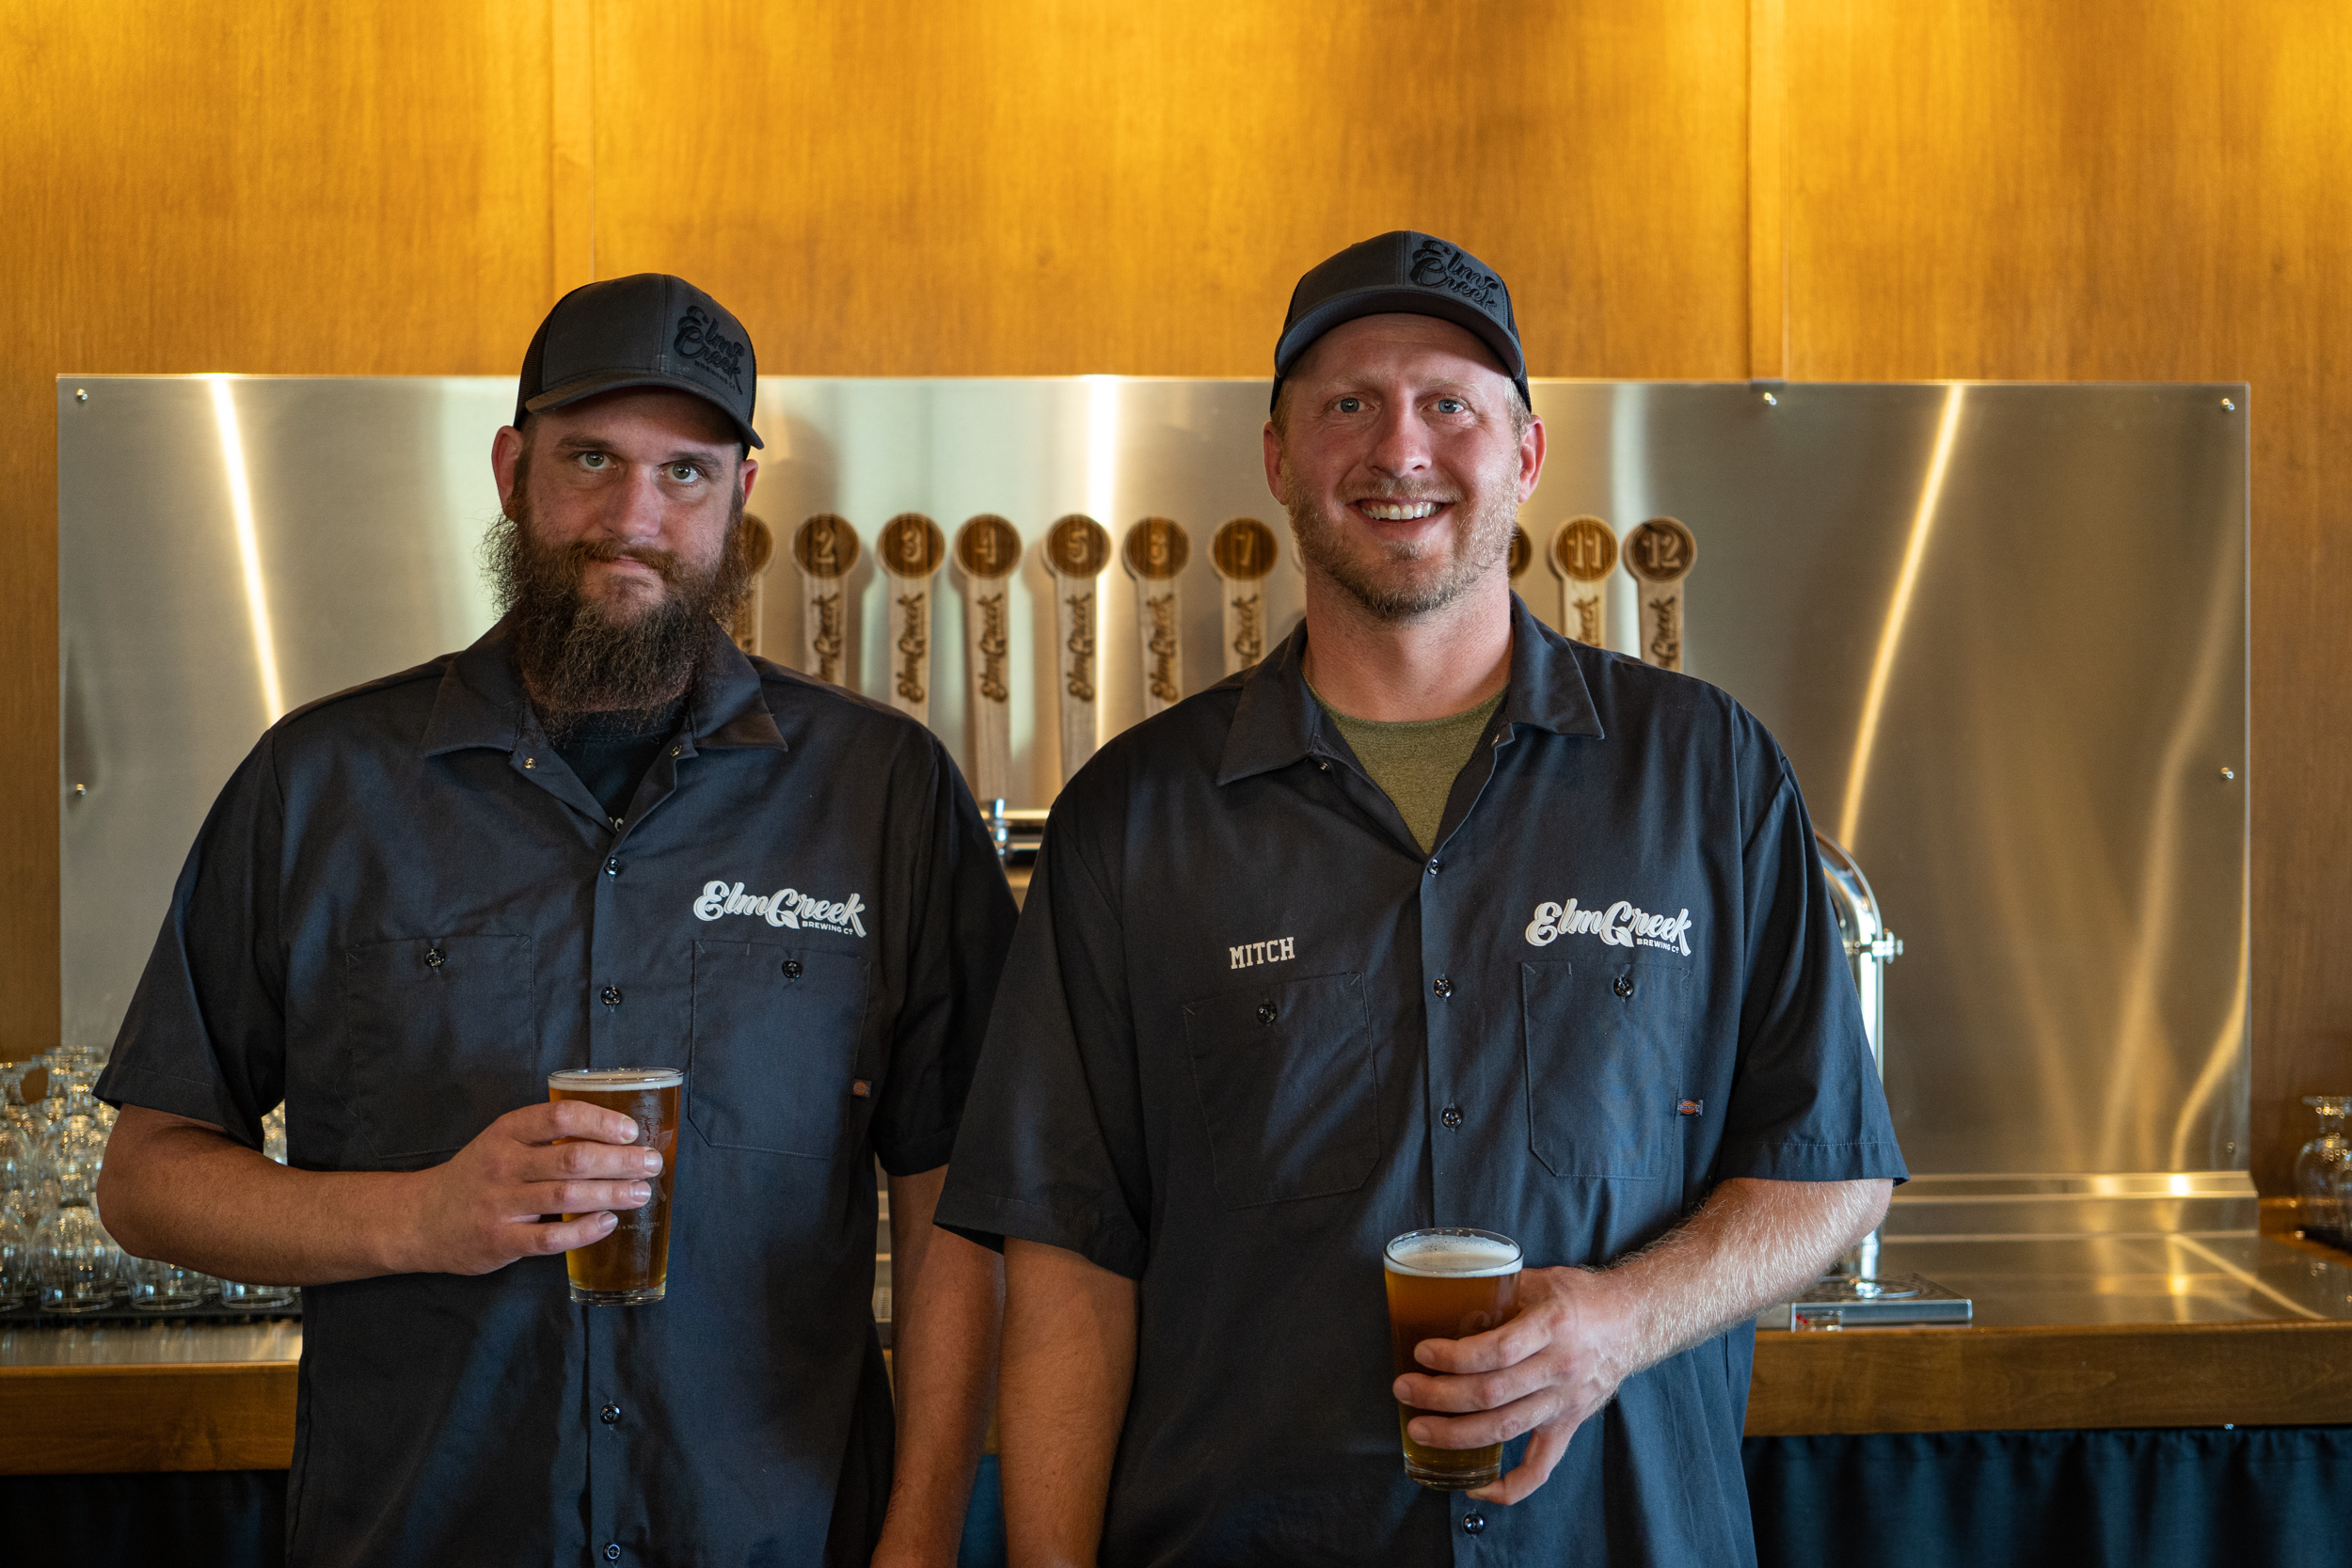 Elm Creek brewer Grant Aldrich (left) and Mitch Carlson, who co-owns the brewery with Wade Carlson // Photo by Tony Saunders